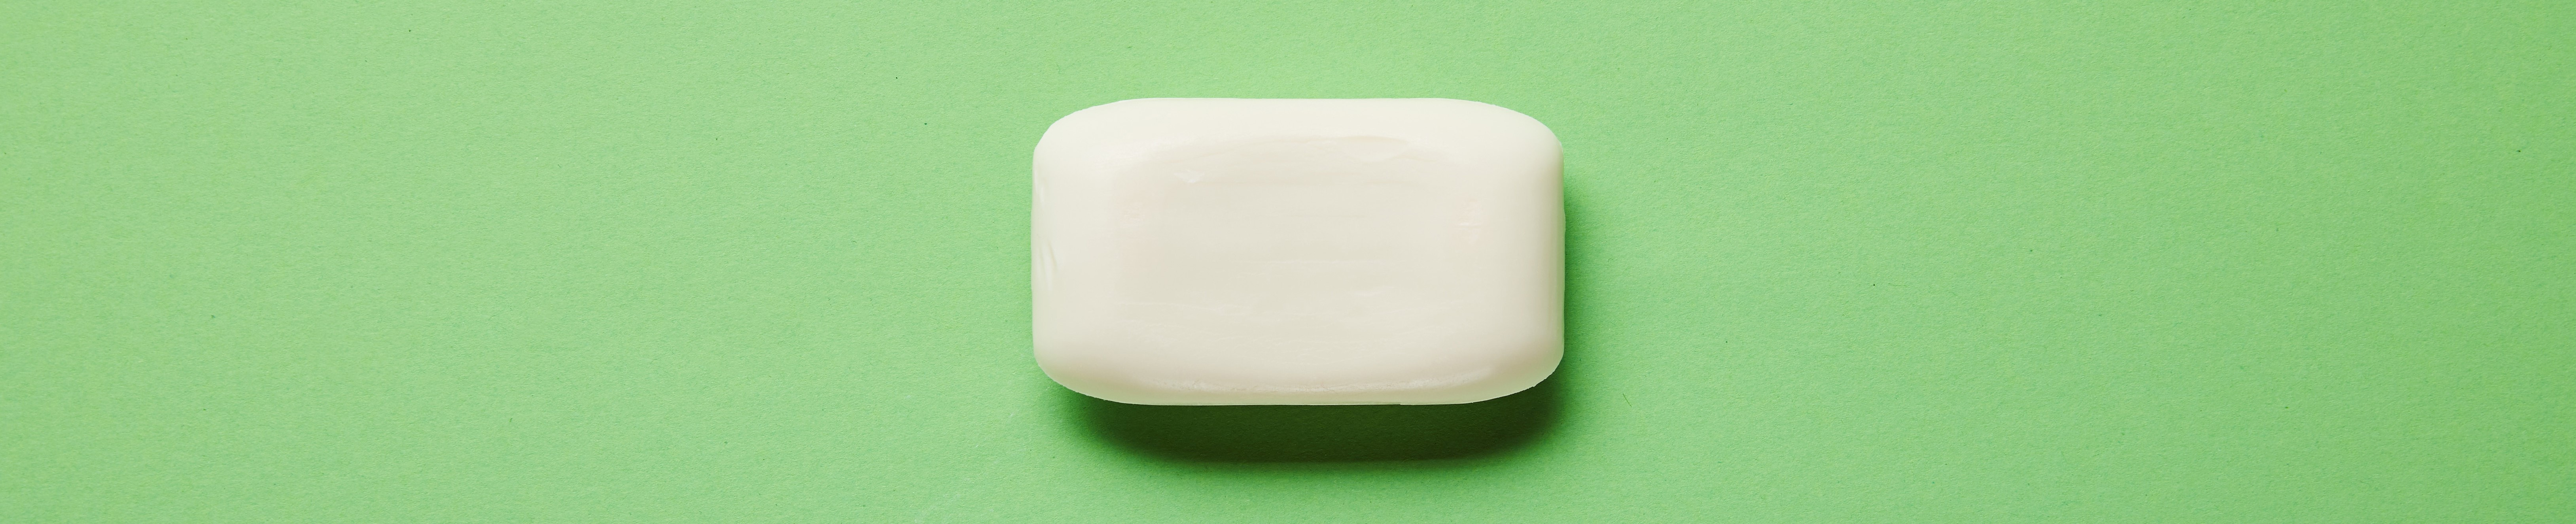 white bar soap on green background